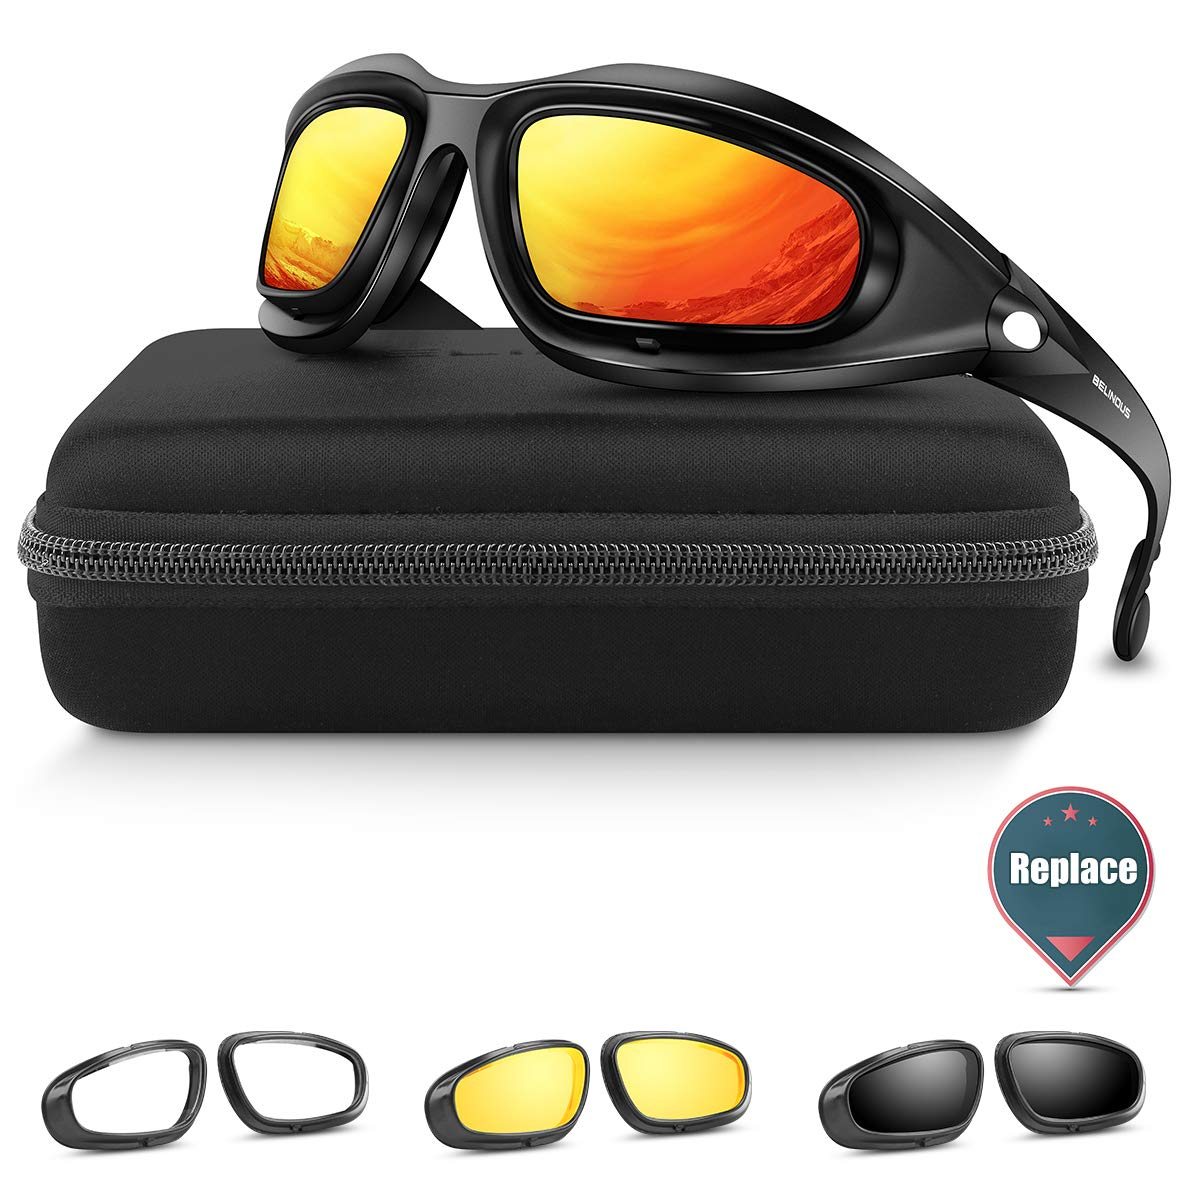 BELINOUS Safety Glasses, Polarized Motorcycle Riding Glasses Goggles Sunglasses Accessory for Men Women, 4 in 1 Copper Smoke Clear Yellow Lenses, Black Frame, Cycling Driving Hunting Fishing Shooting by BELINOUS